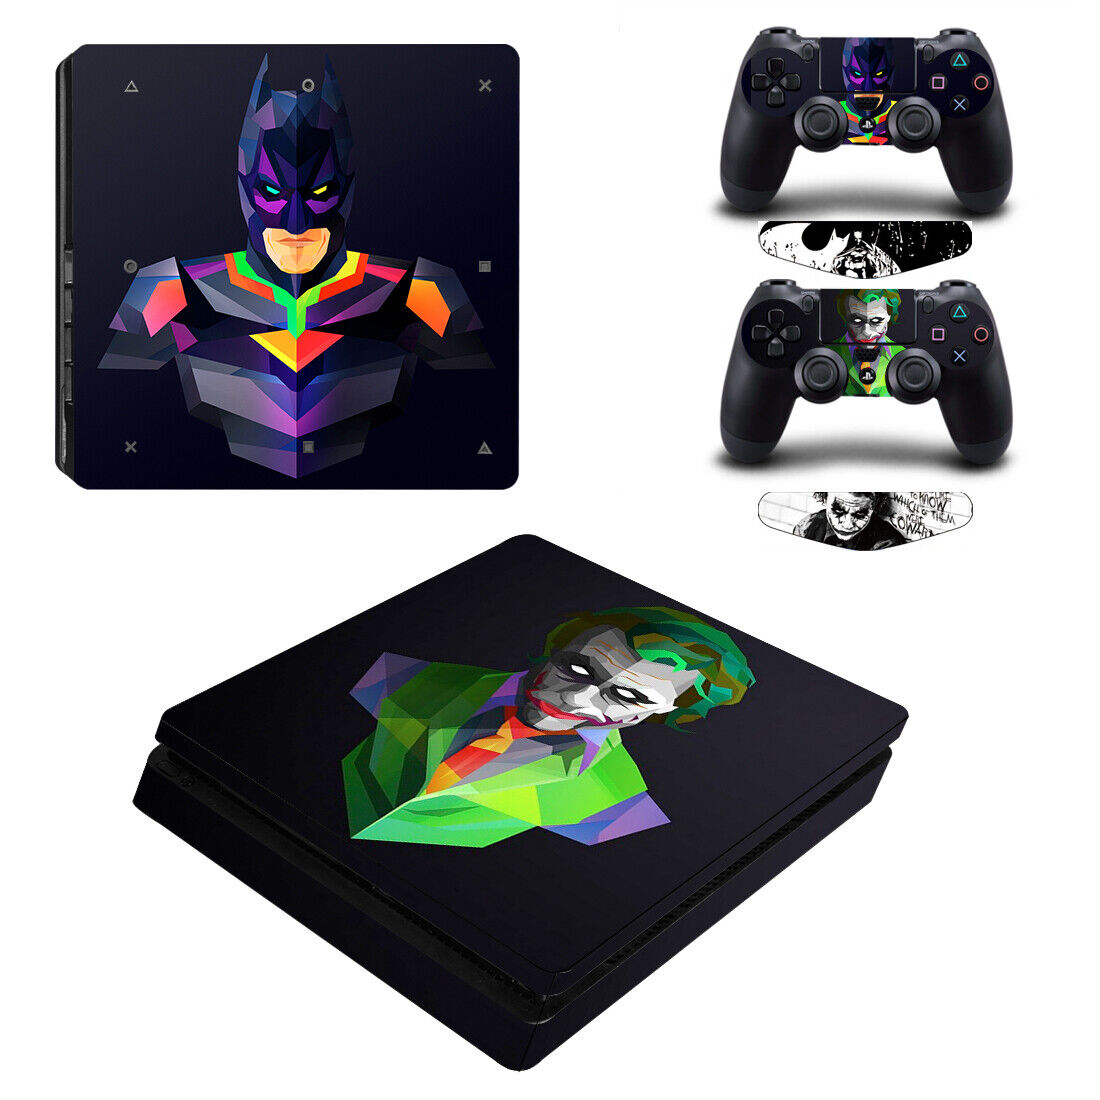 Batman and Joker Vinyl Decal Skin Sticker for PS4 Slim Console & 2 Controllers